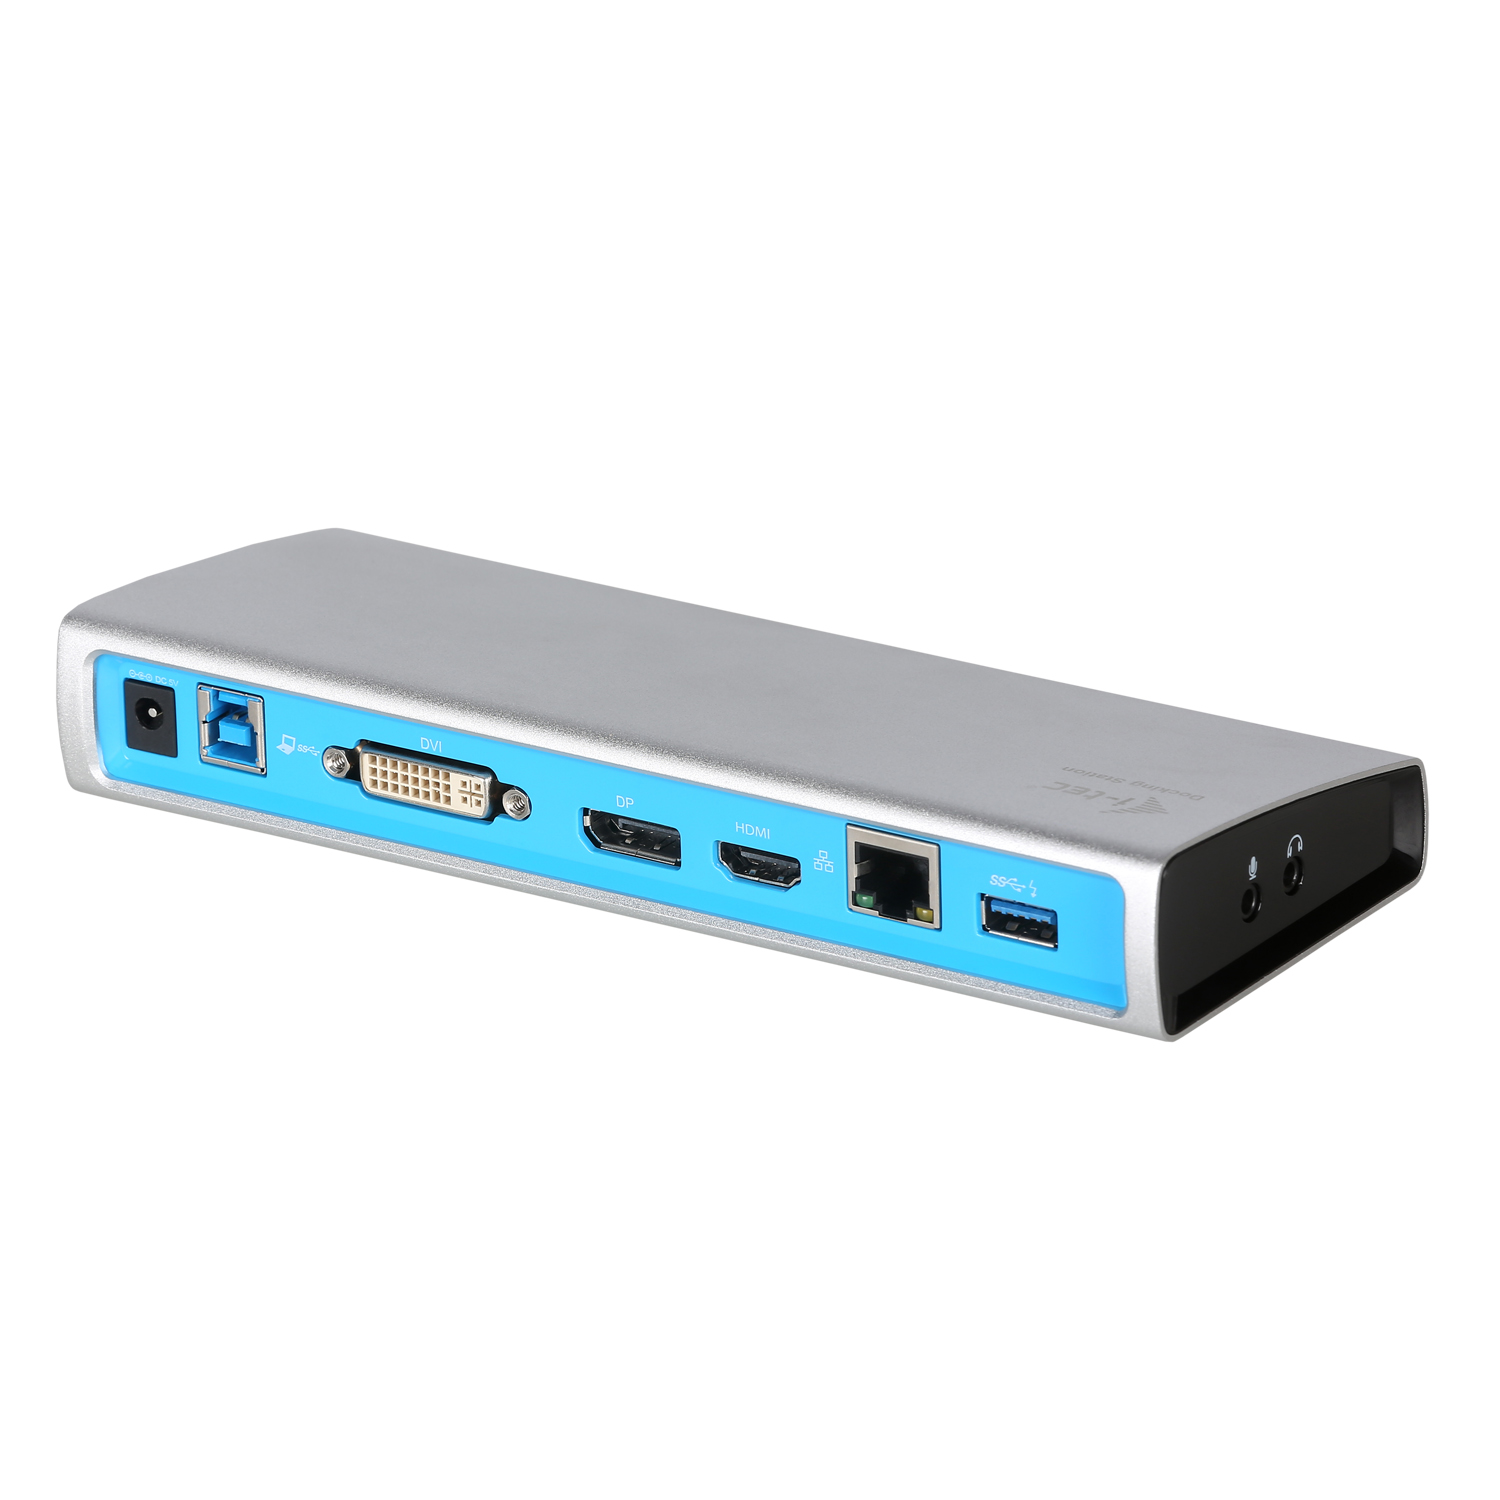 iTec USB 3.0 METAL Docking Station DVI+HDMI/DP Glan + Audio + USB 3.0 HUB